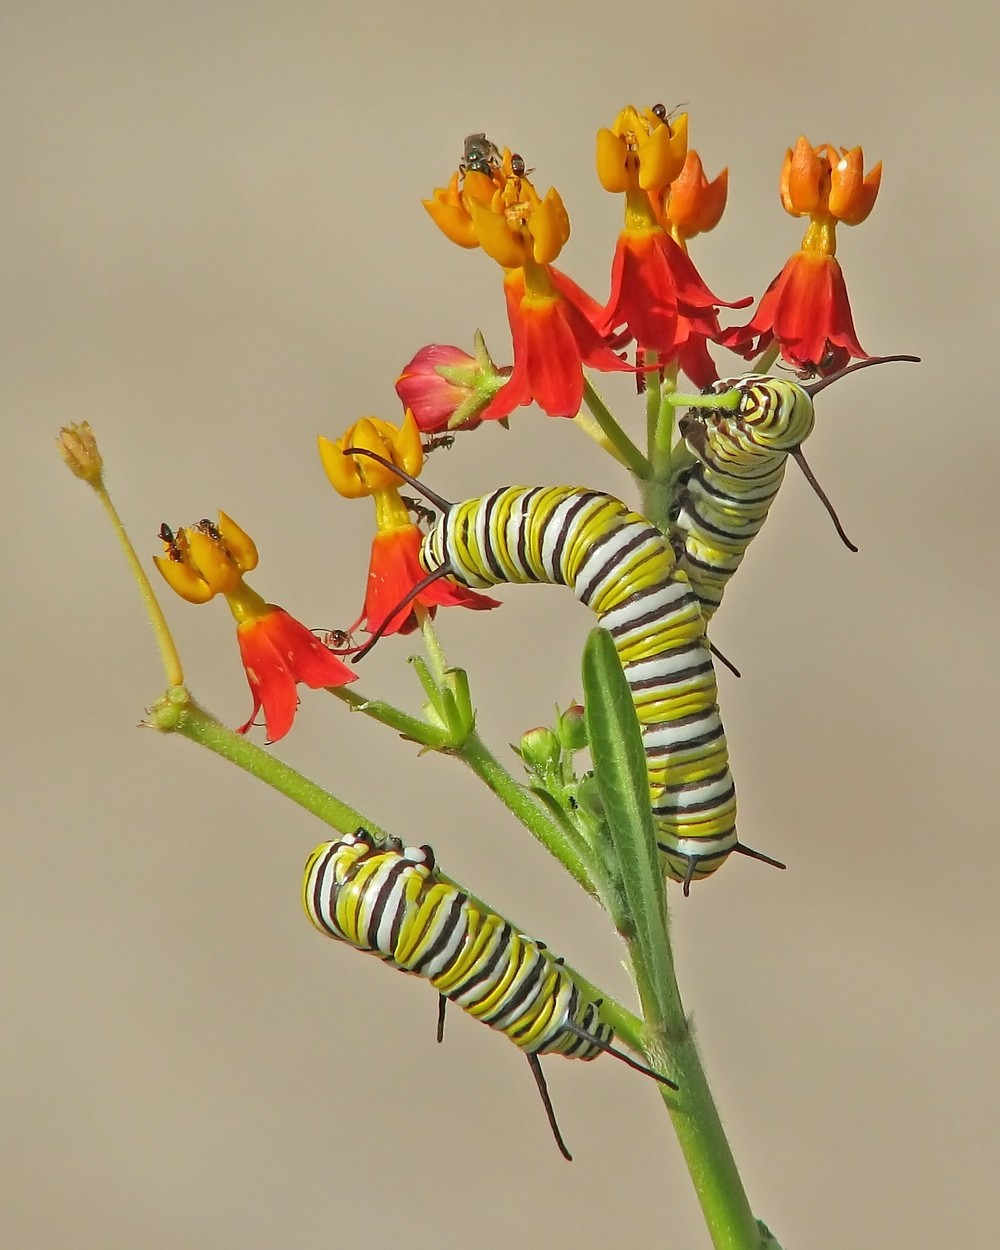 Monarch caterpillars in scarlet milkweed by Vicki DeLoach/CC BY